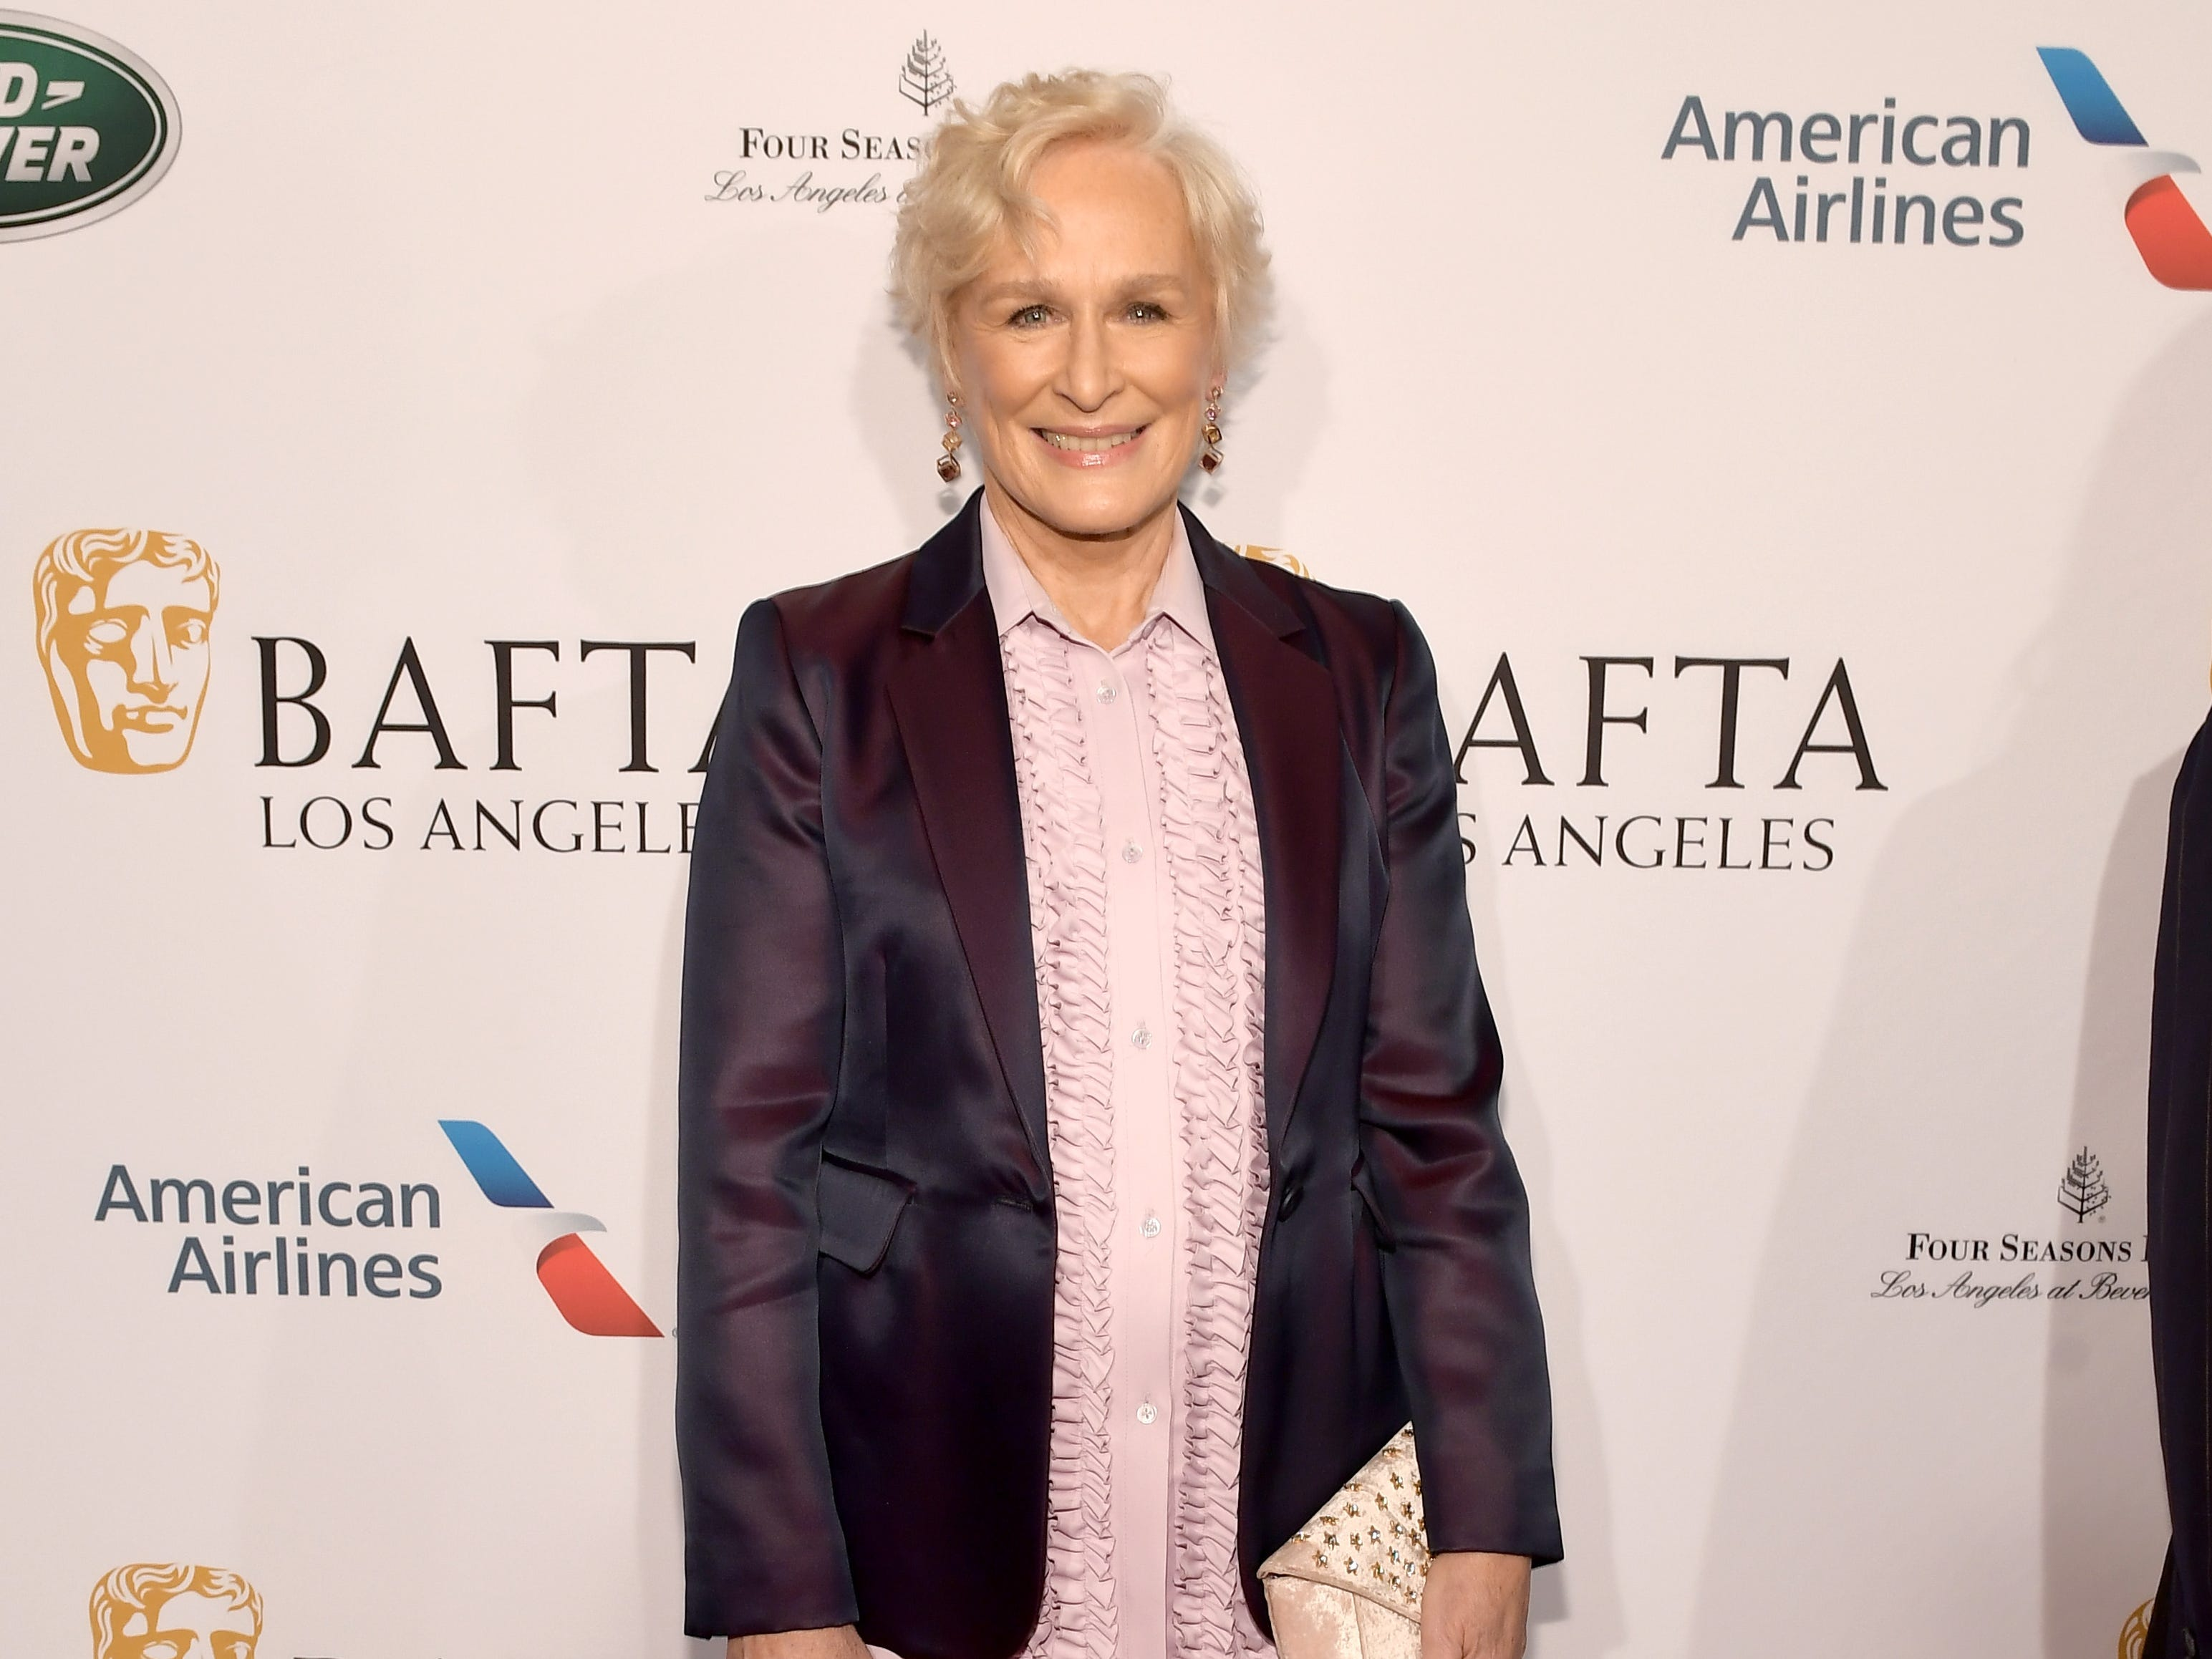 LOS ANGELES, CA - JANUARY 05:  Glenn Close attends The BAFTA Los Angeles Tea Party at Four Seasons Hotel Los Angeles at Beverly Hills on January 5, 2019 in Los Angeles, California.  (Photo by Matt Winkelmeyer/Getty Images) ORG XMIT: 775256316 ORIG FILE ID: 1077924404